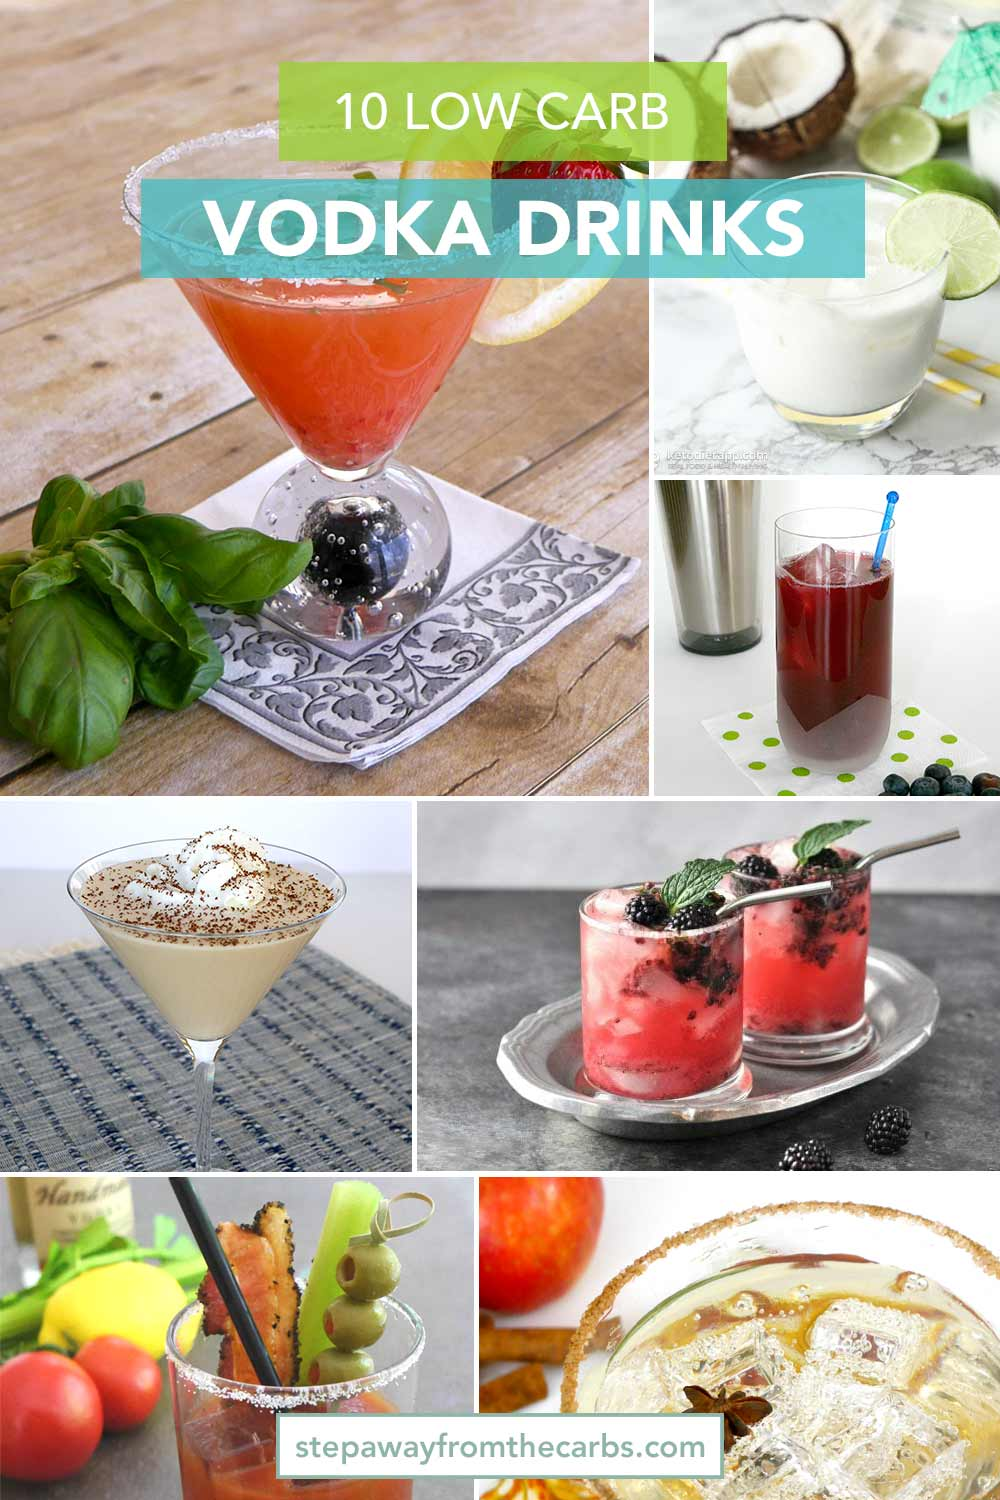 10 Low Carb Vodka Drinks - all keto and sugar free recipes!